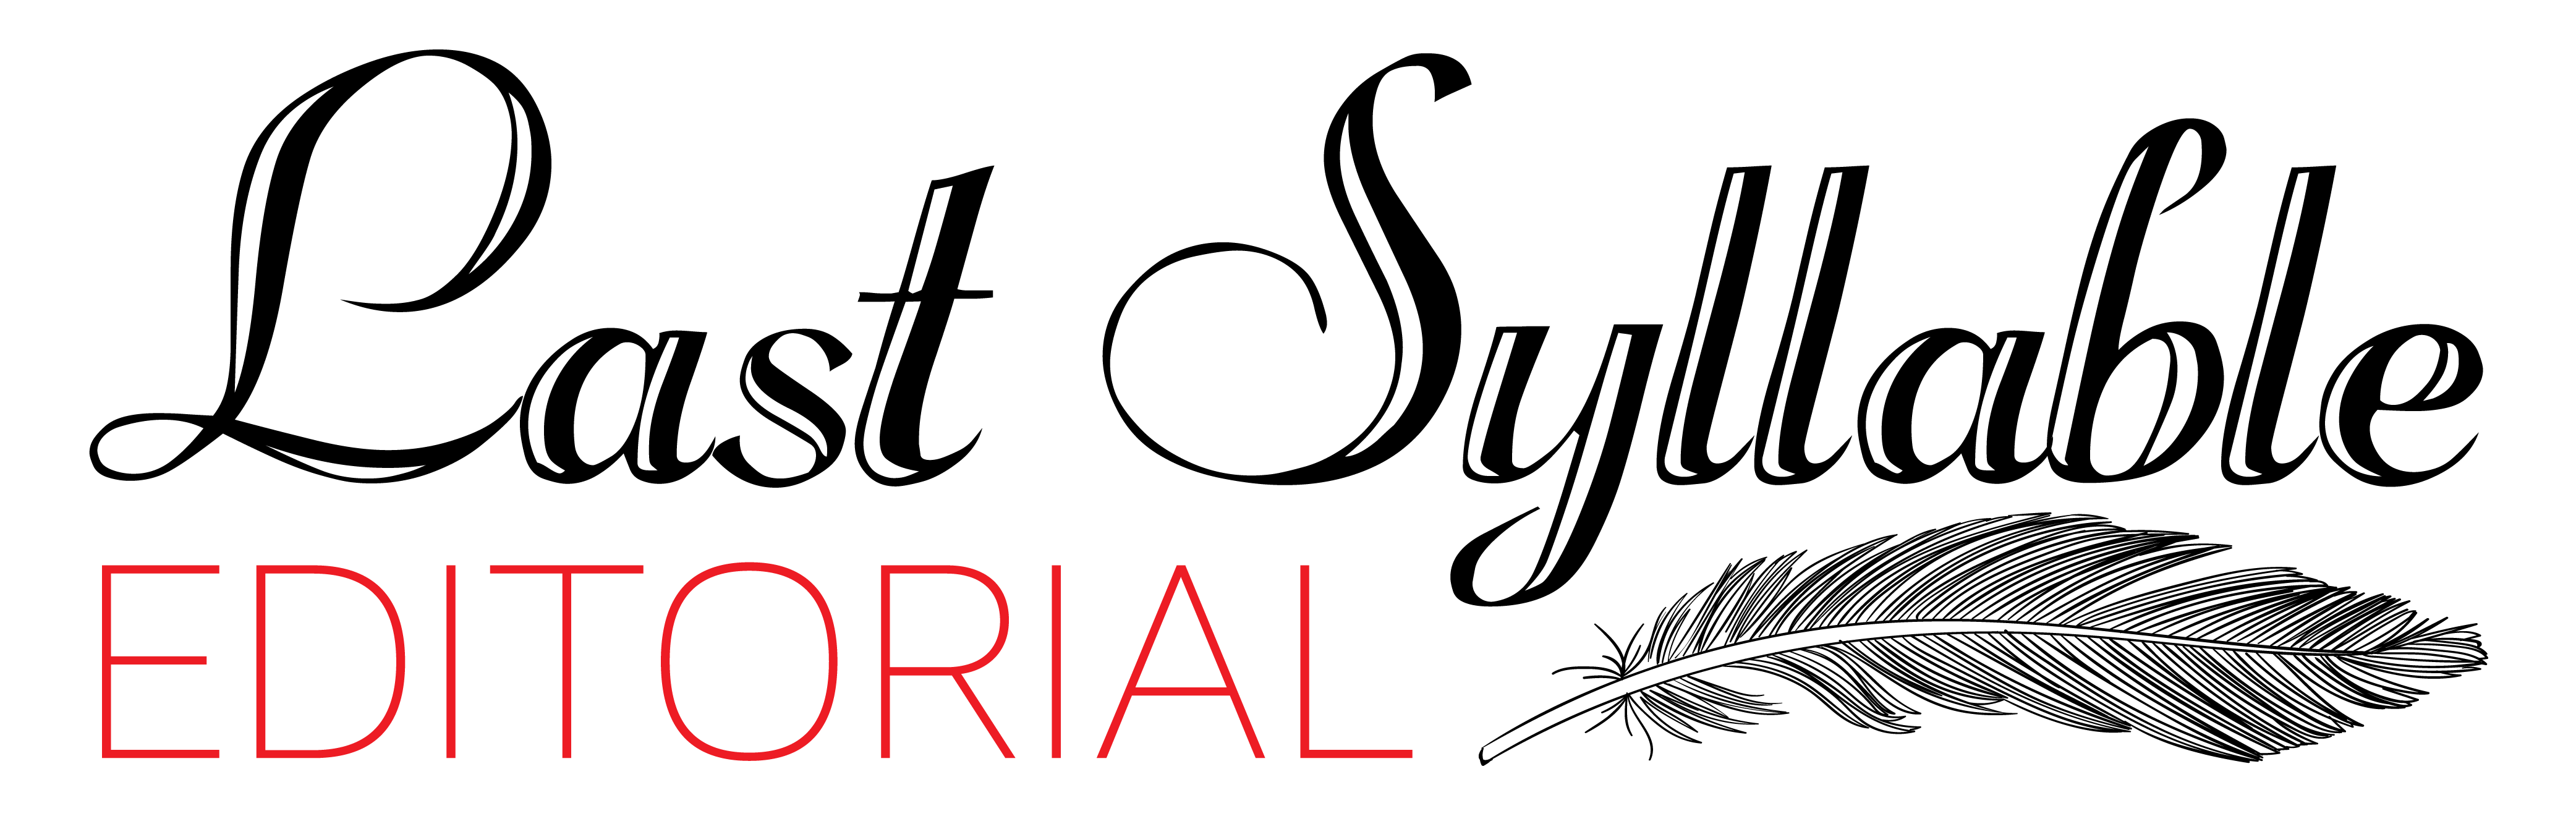 Last Syllable Editorial